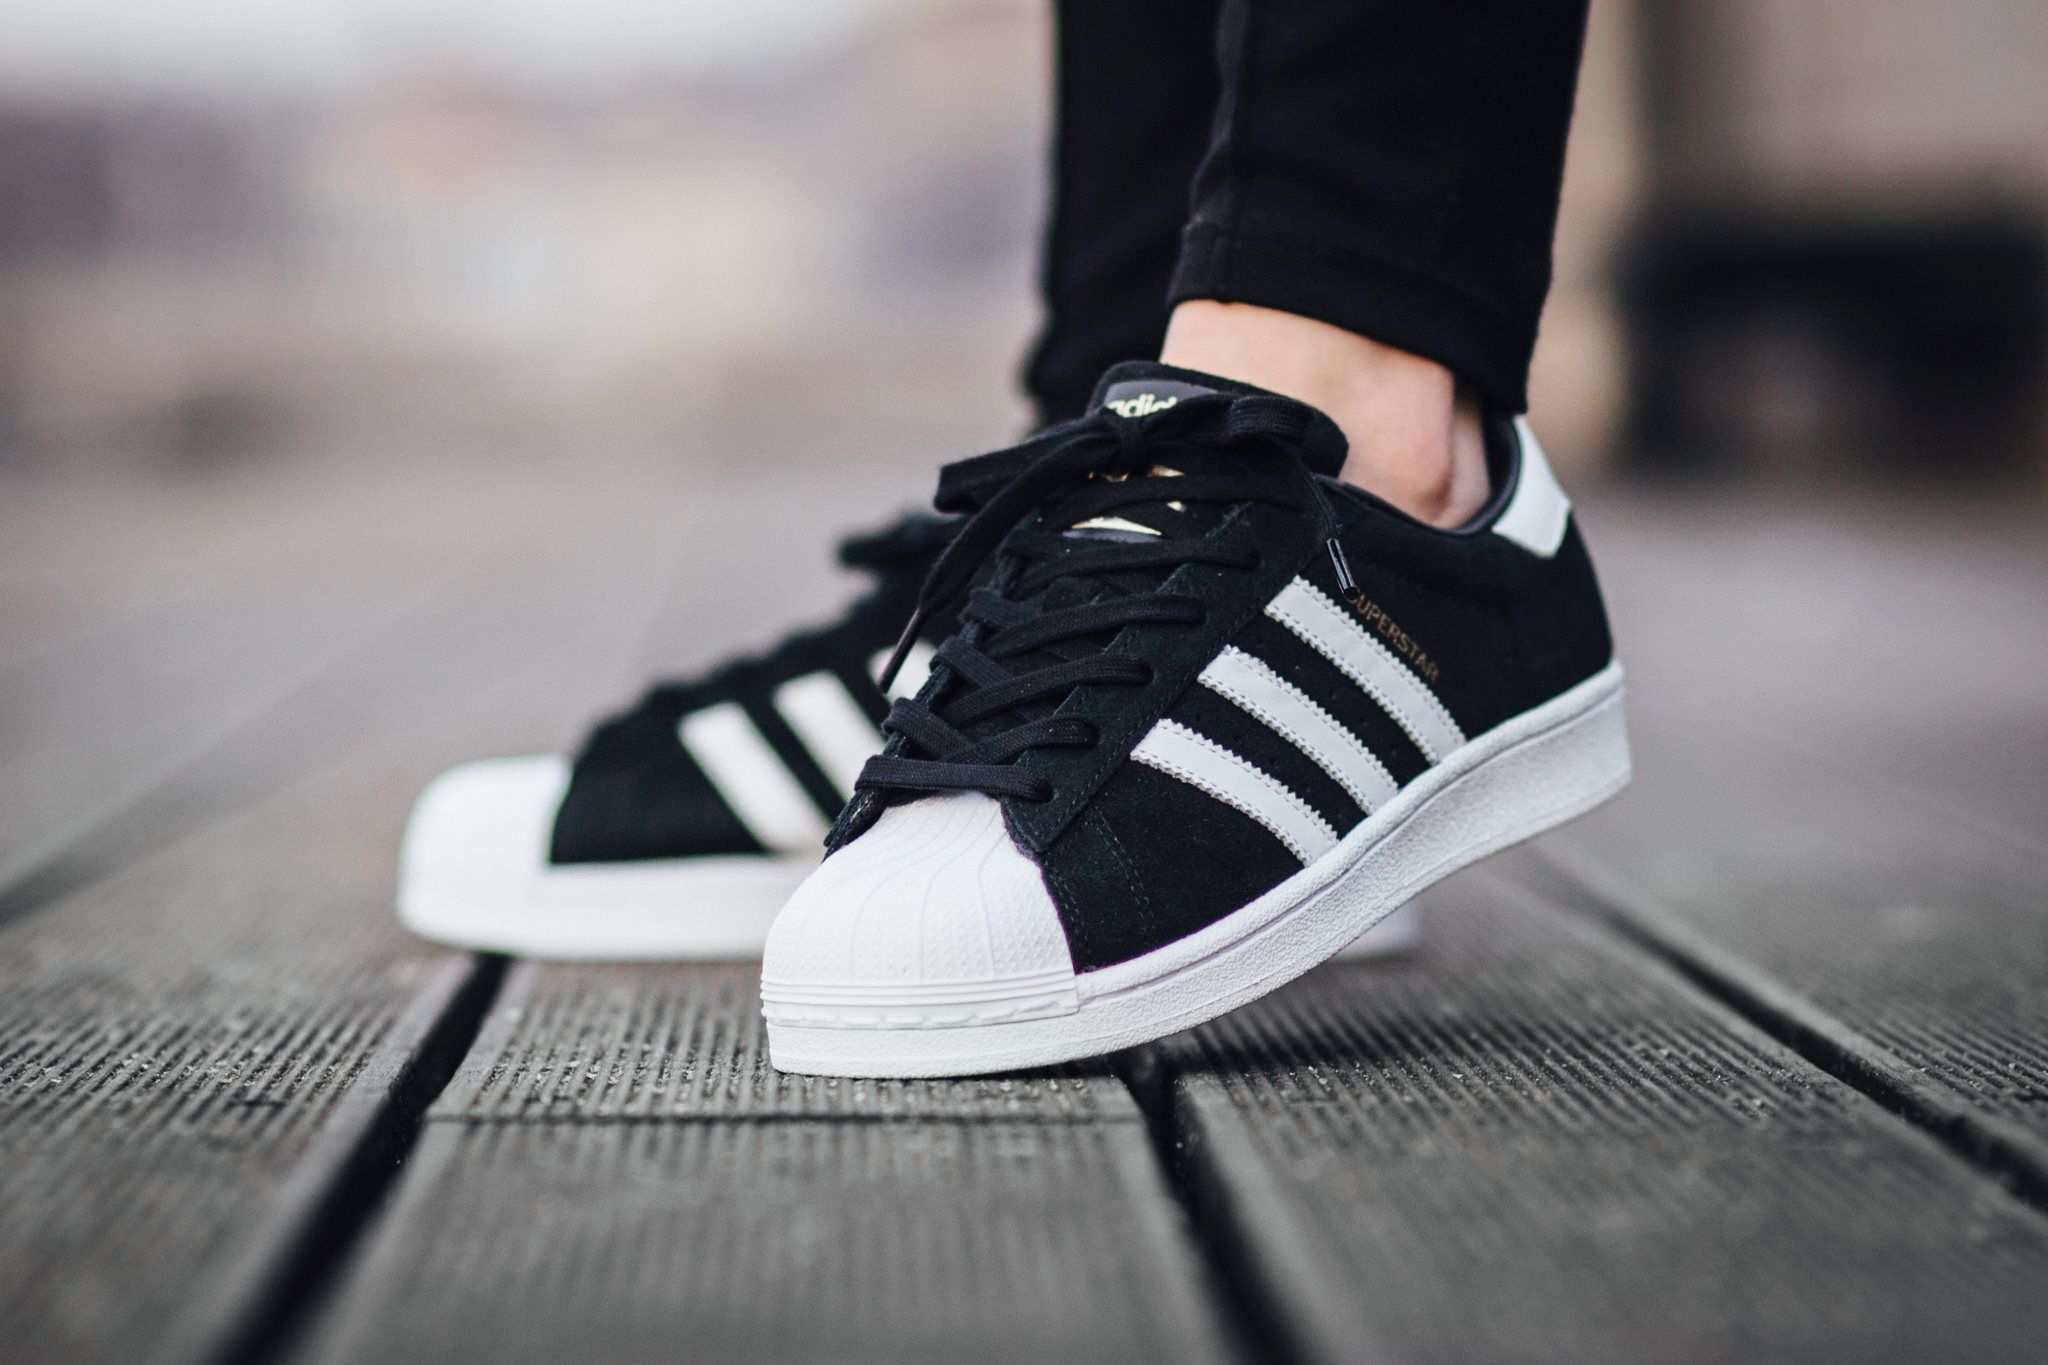 Superstar Adidas Black White Adidas Superstar Retro Adidas Superstar White Sneakers Adidas Superstar Adidas Superstar